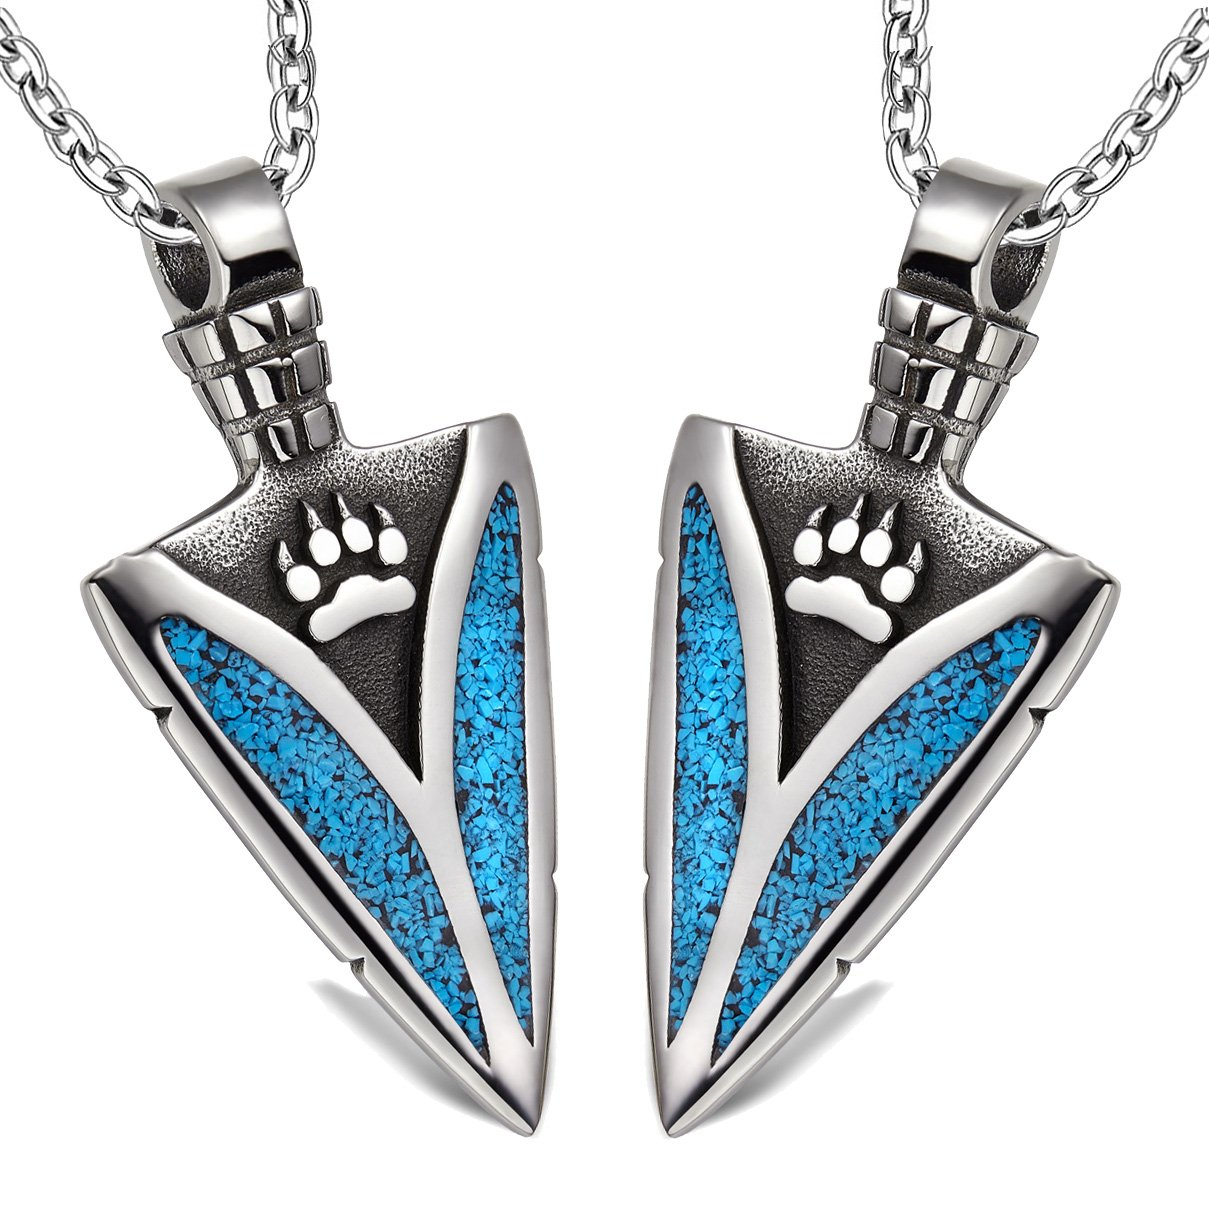 Arrowhead Wild Wolf Paw Love Couples or Best Friends Protection Amulets Set Simulated Turquoise Necklaces